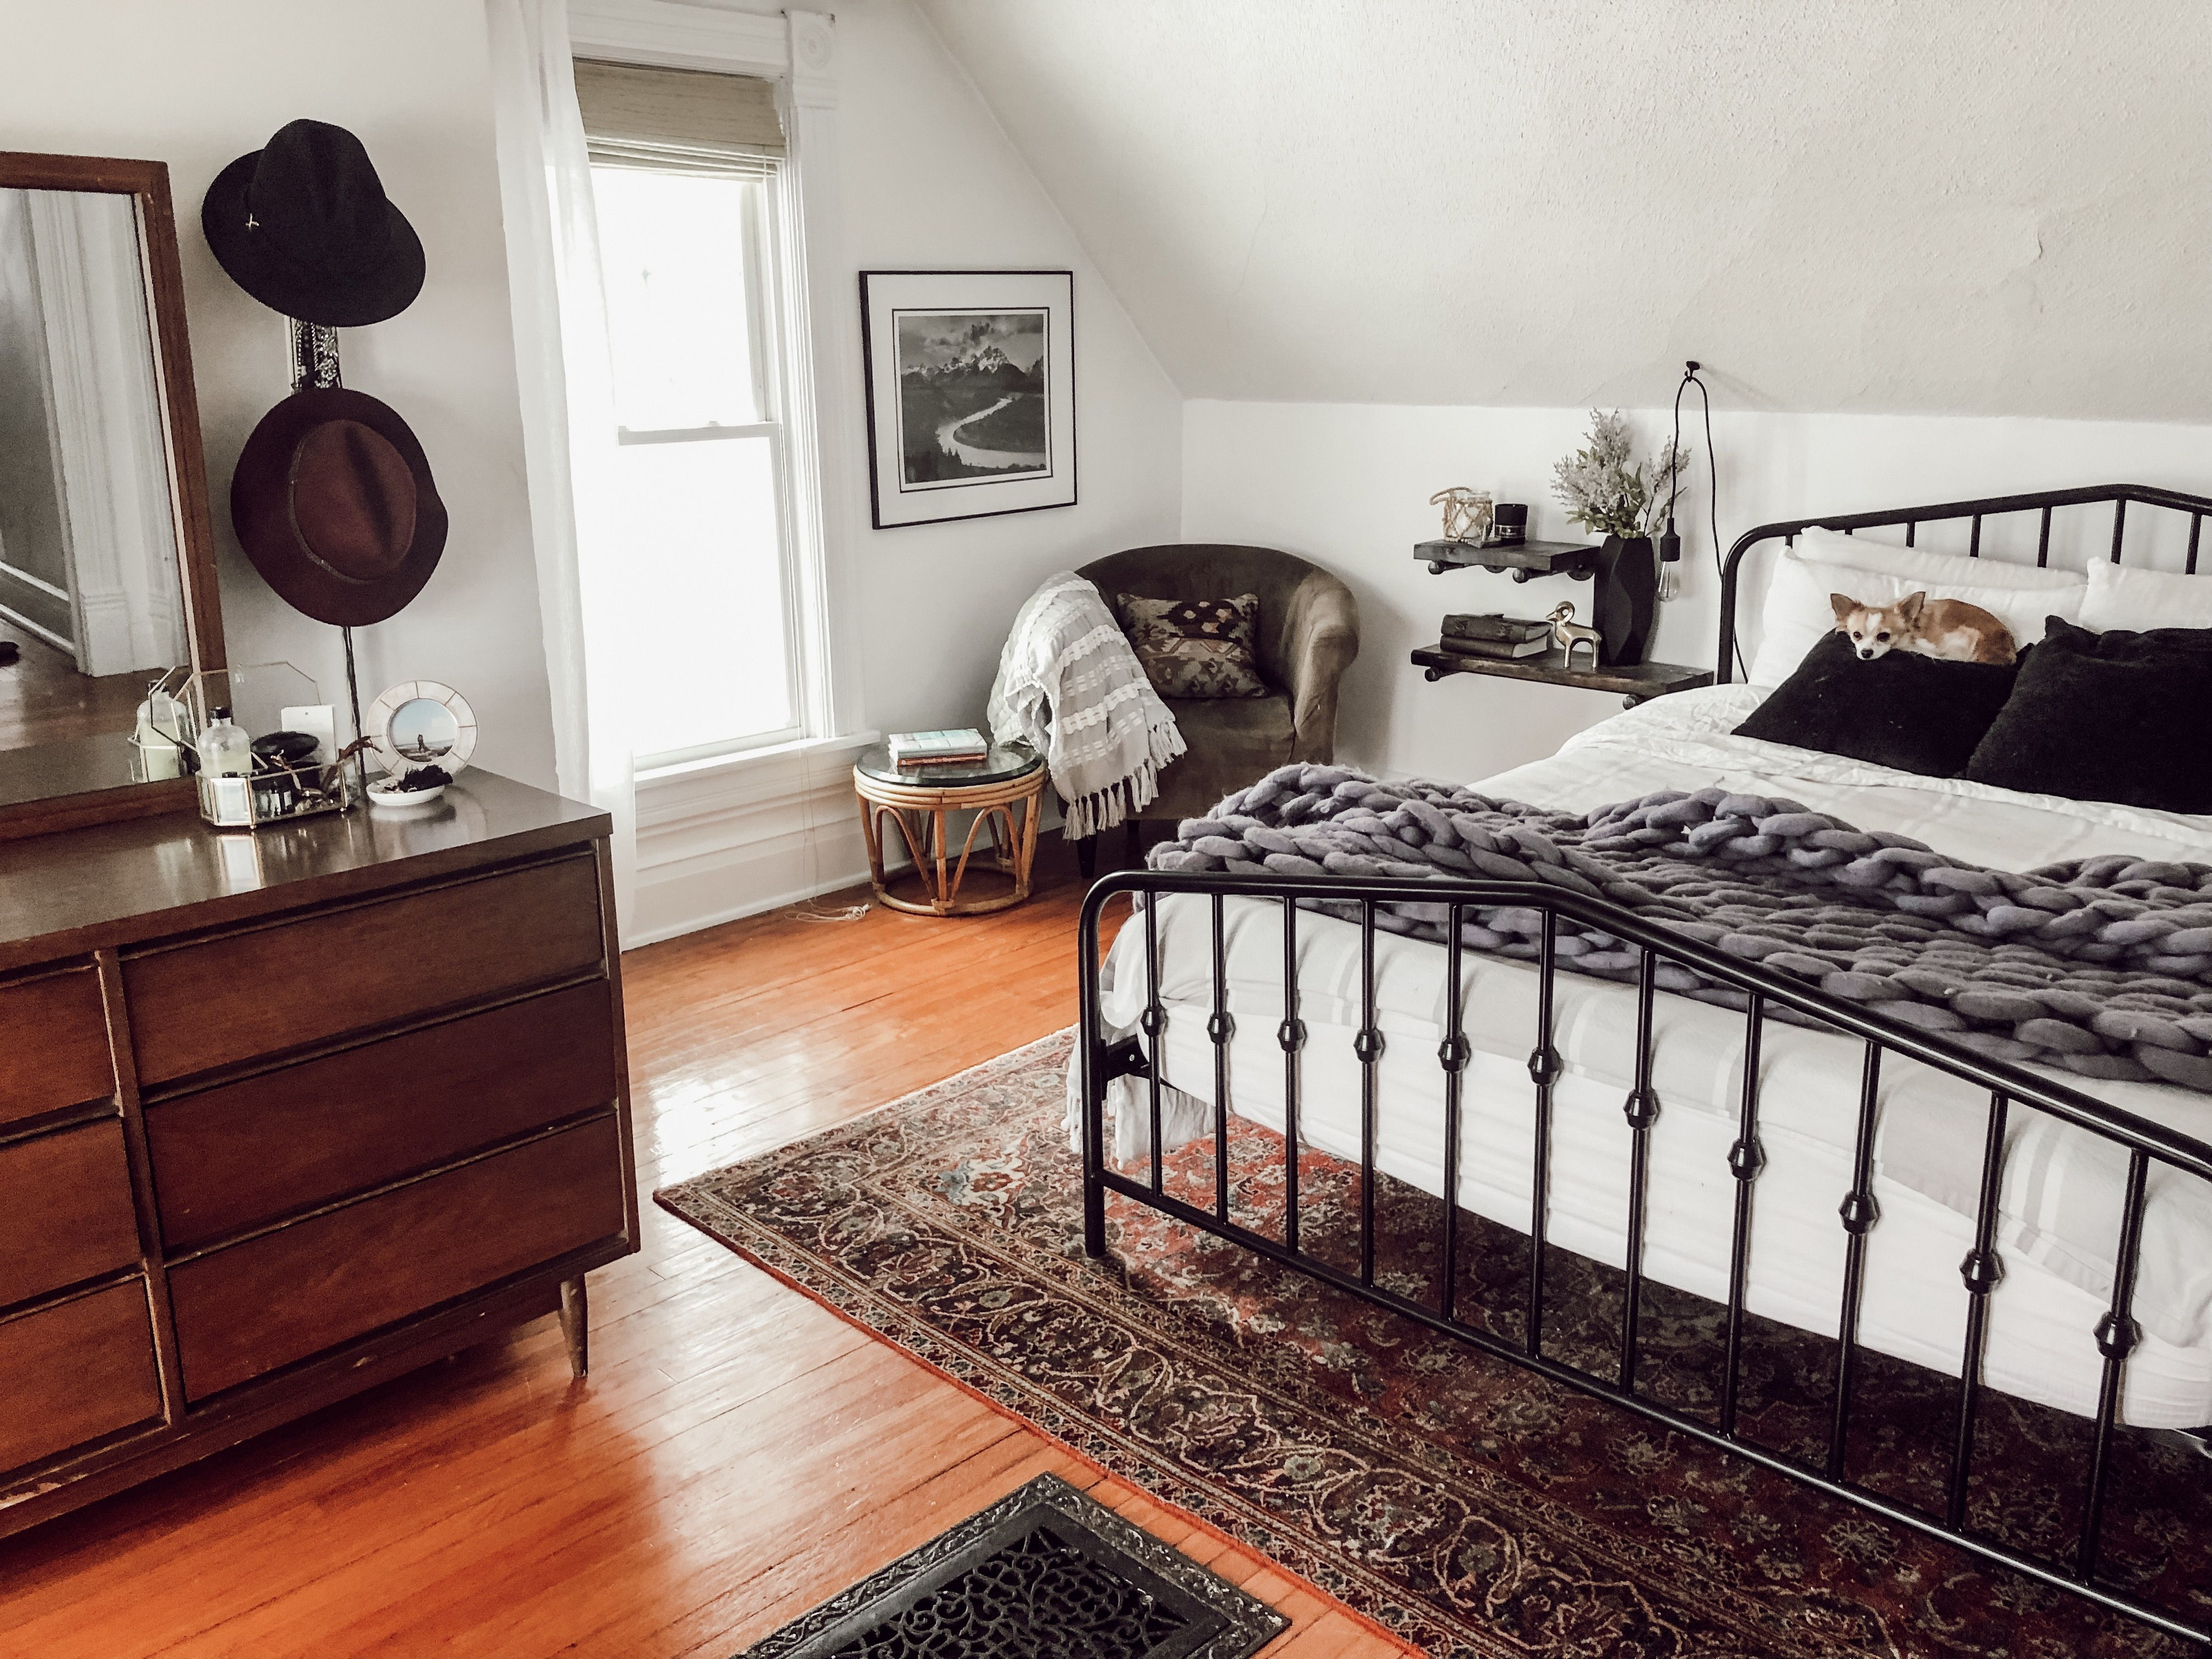 Funky Victorian Home Tour White Bedroom With Black Metal Bed Frame Vintage Rug Floating Shelf Nightstands And A Sitti Black Bed Frame Home Victorian Bedroom [ 3024 x 4032 Pixel ]